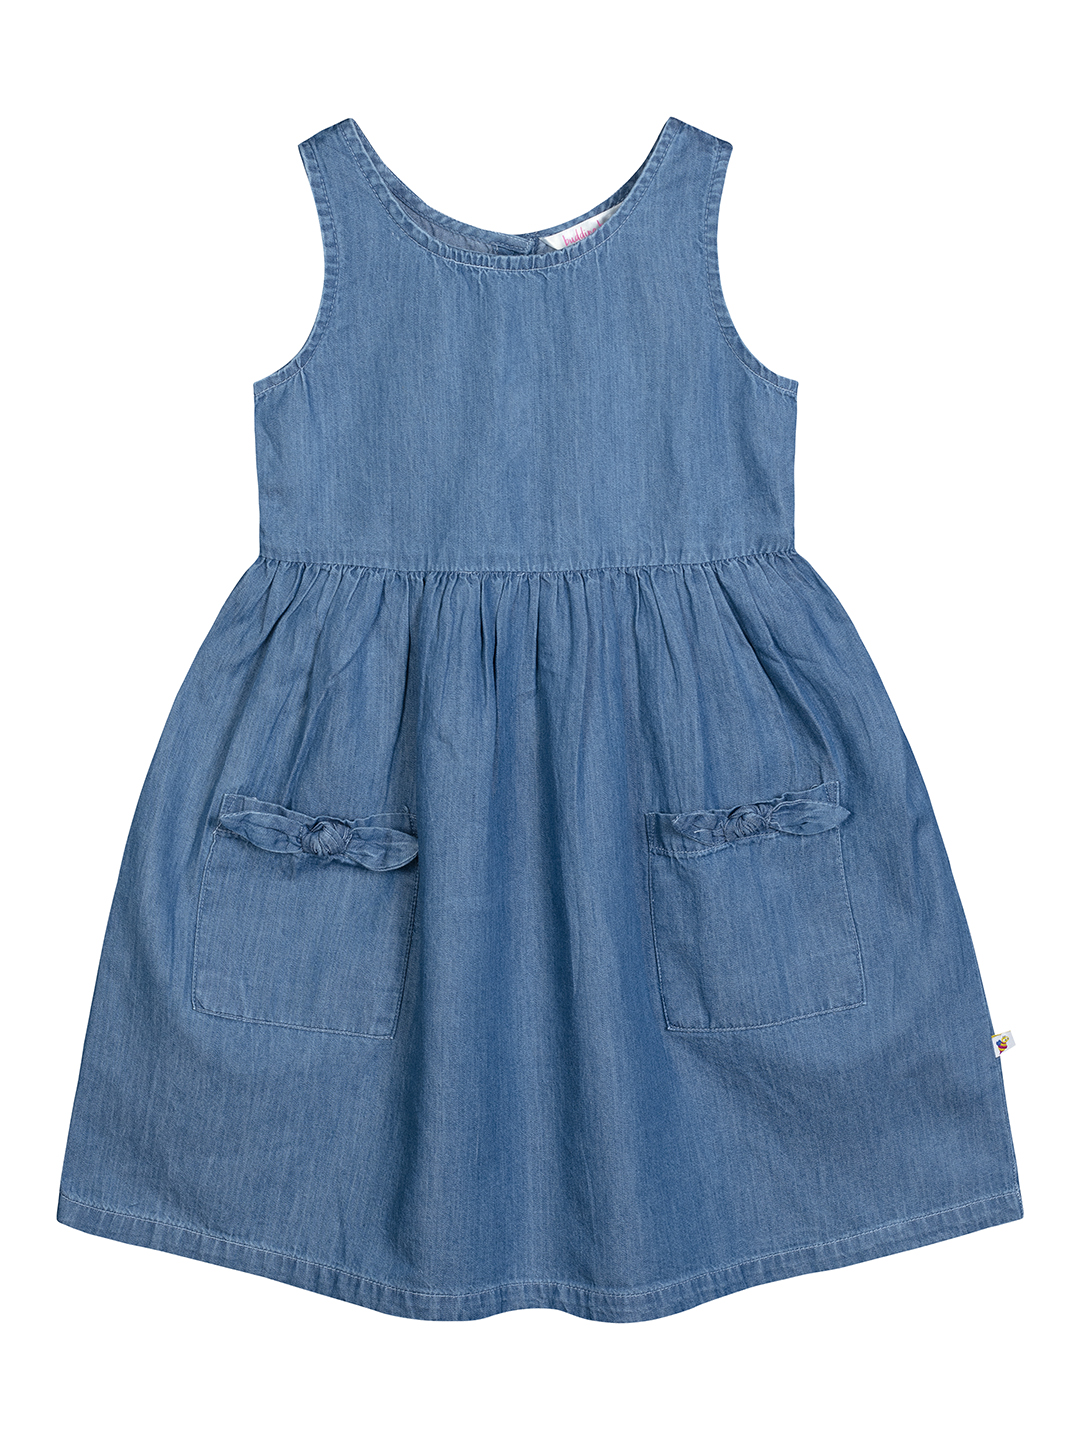 Budding Bees | BUDDING BEES DENIM DRESS WITH BOW POCKETS-BLUE